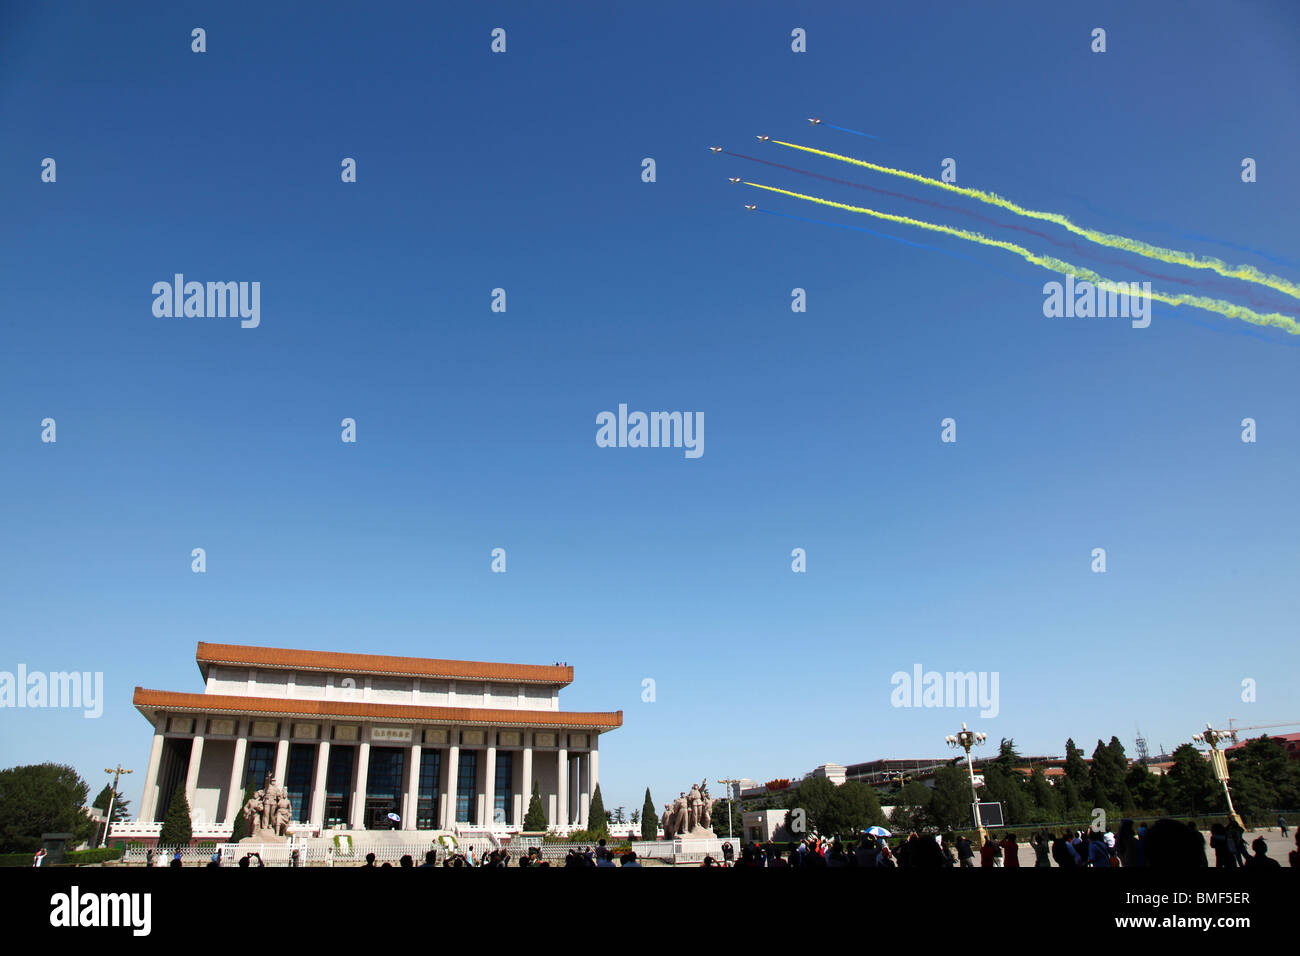 Jet plane contrail in clear blue sky, The 60th Anniversary of the People's Republic of China, Tian'anmen - Stock Image